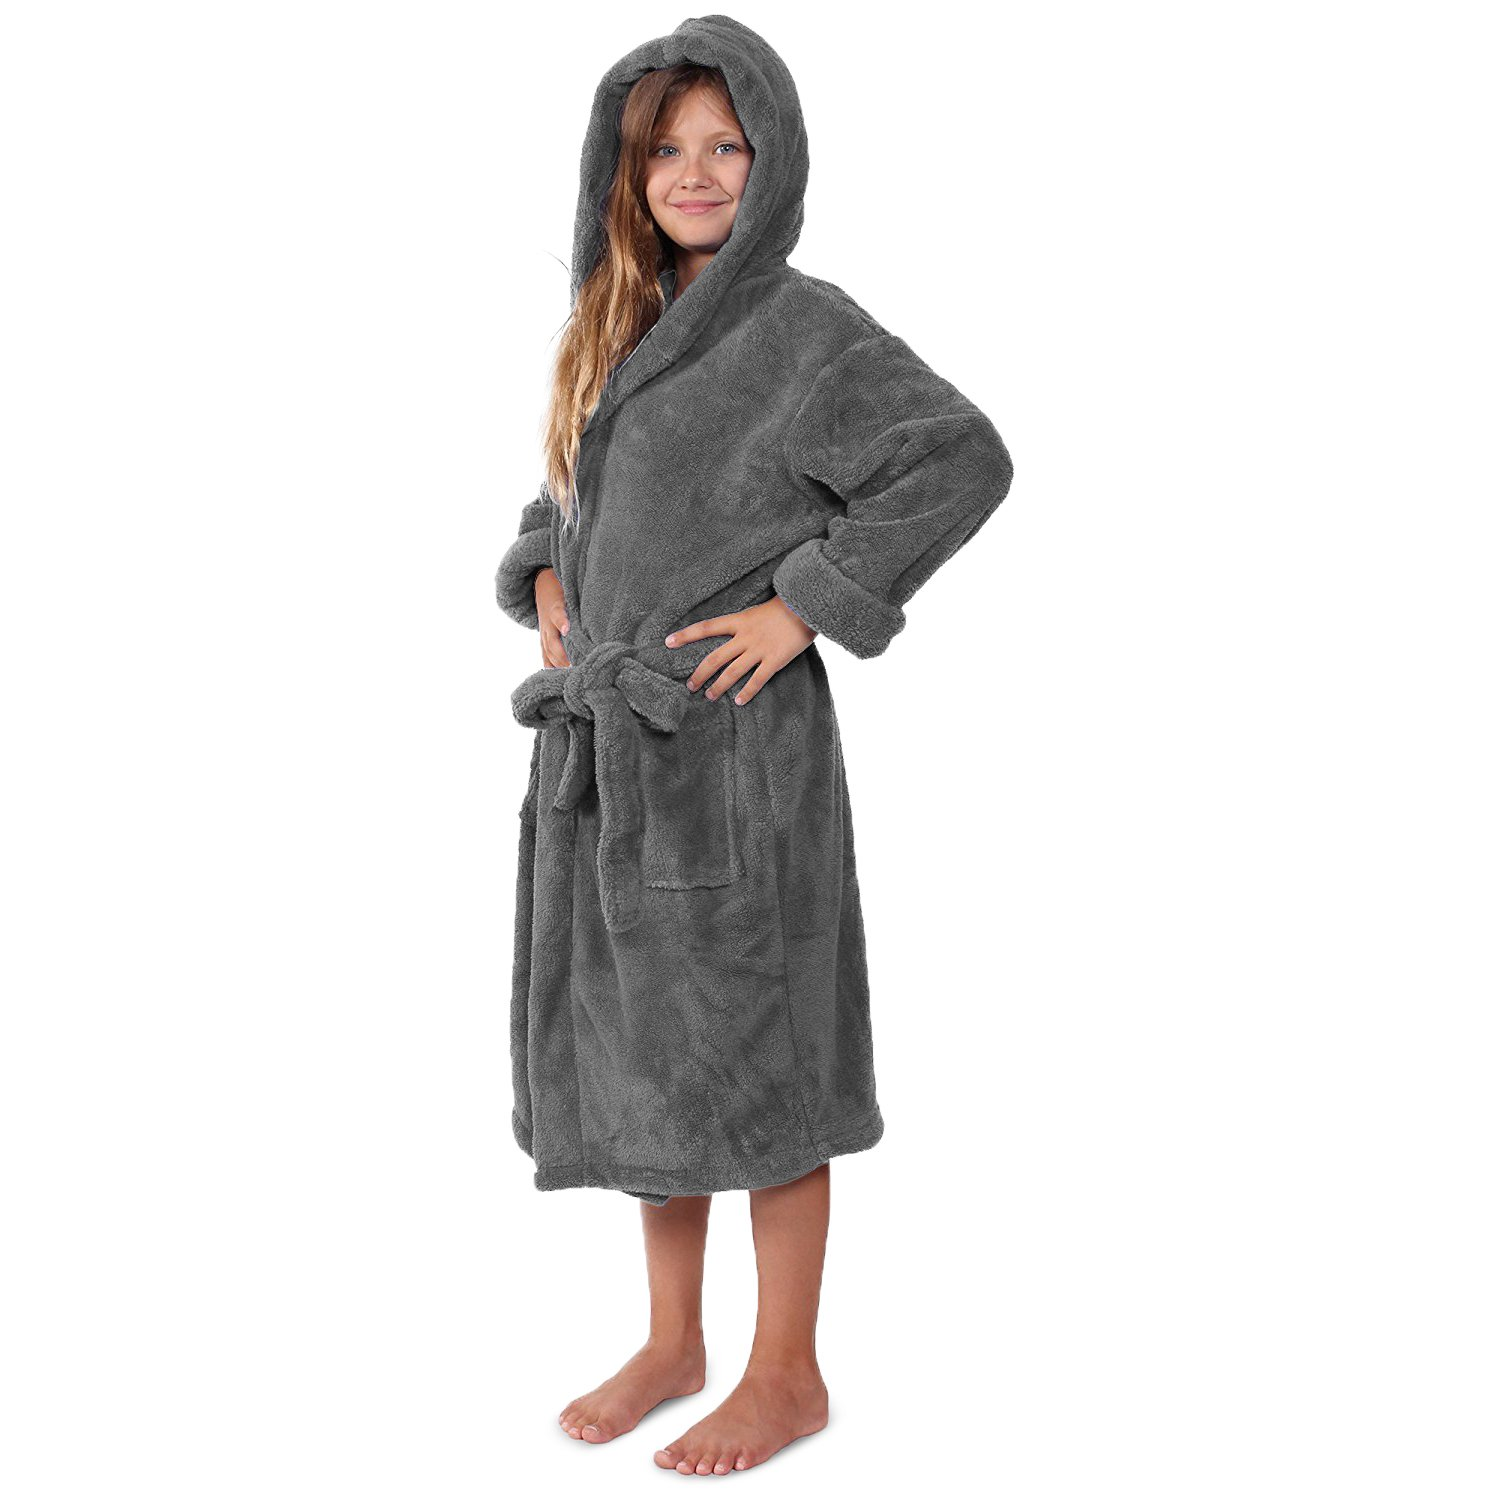 Indulge Girls Robe, Kids Hooded Soft and Plush Bathrobe, Made in Turkey